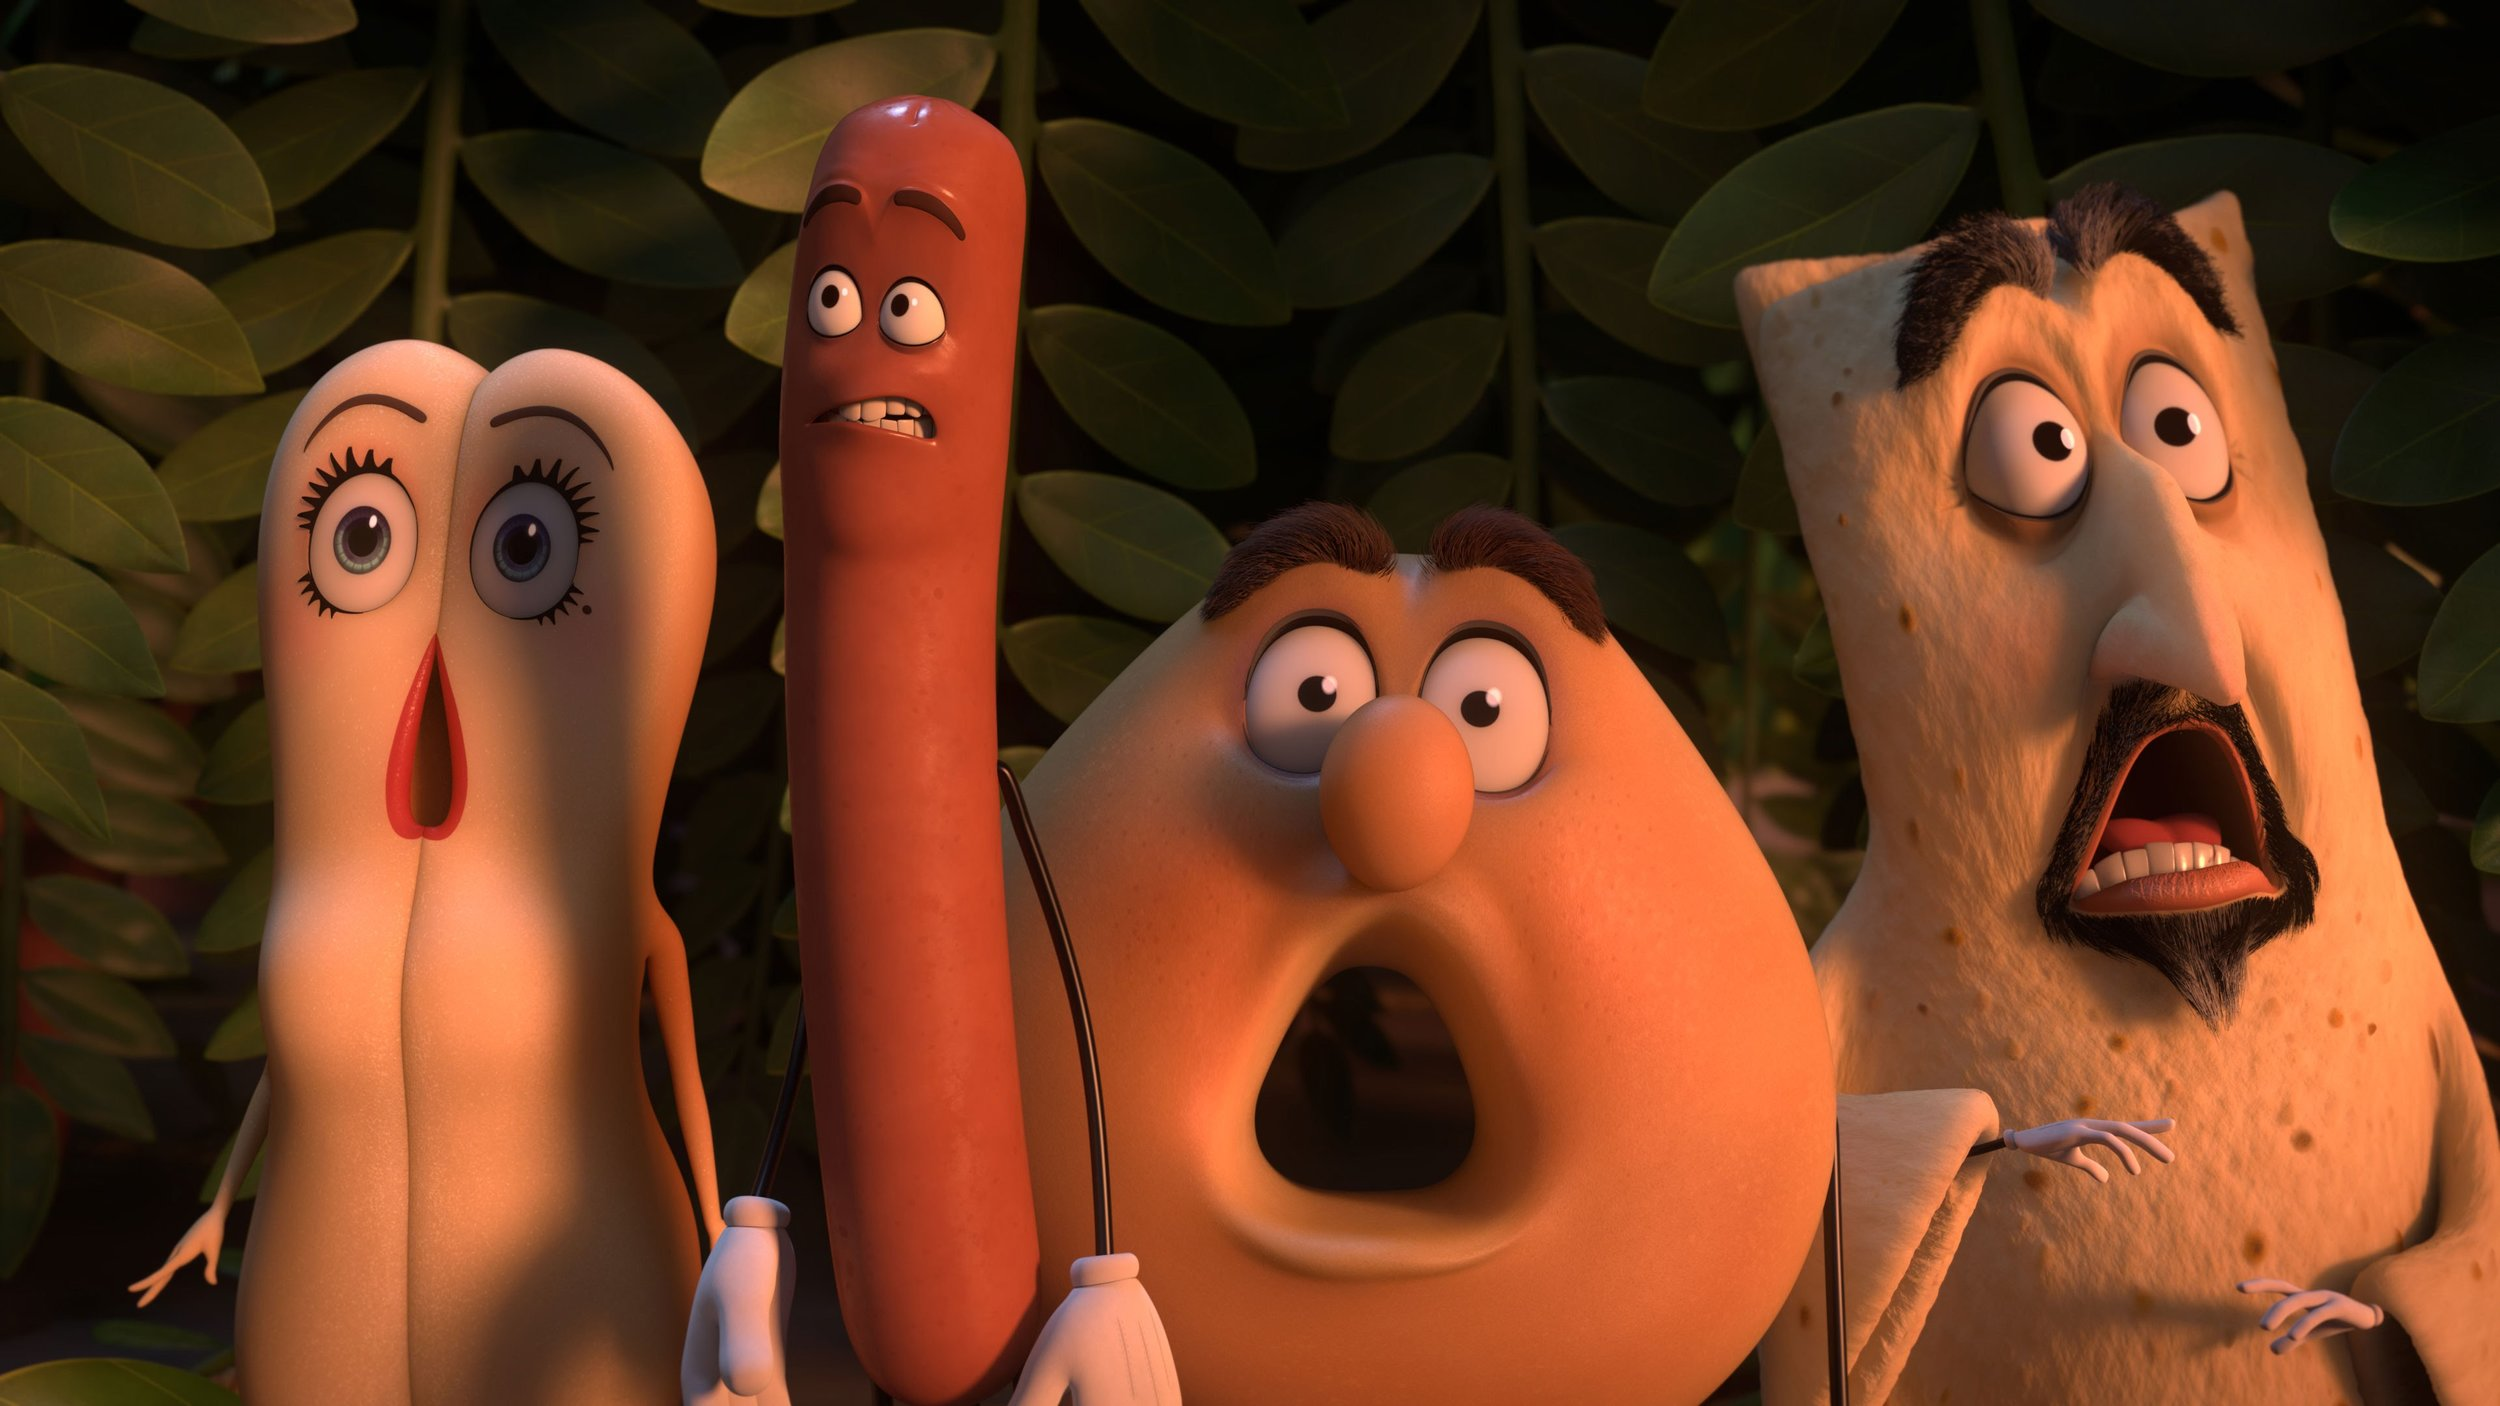 Sausage Party - Amanda discusses Sausage party with repeat guest, Dan, and new guest, Ariel. Dan nerds out about trains, Ariel thinks Sausage Party could make a great date night movie and Amanda feels incredibly uncomfortable while Dan makes it worse.